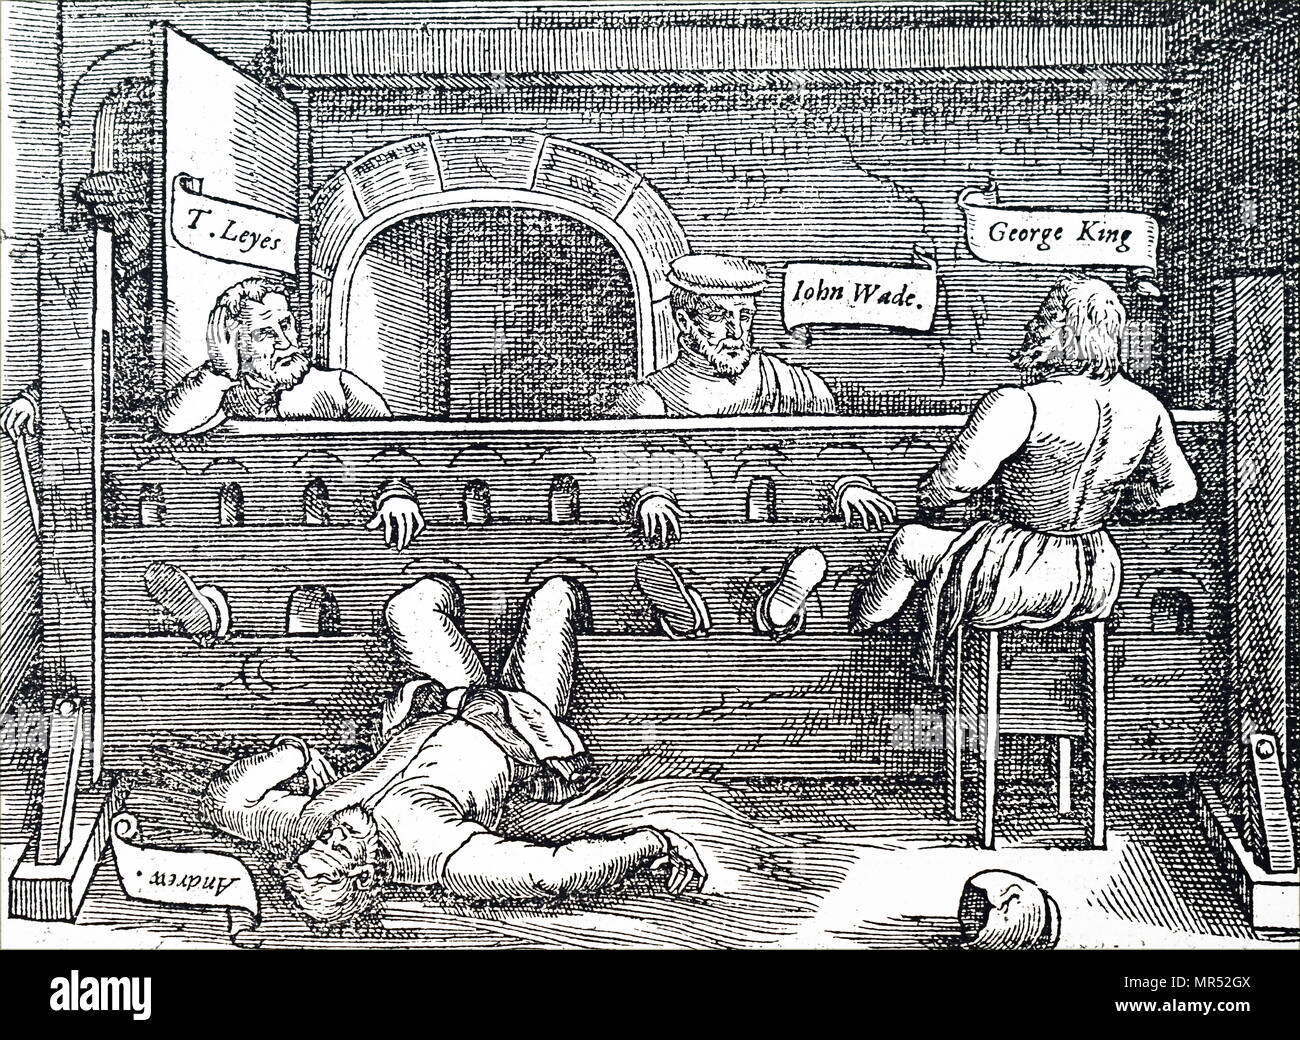 Engraving depicting prisoners confined in stocks in the Lollards Tower, Lambeth. Dated 14th century - Stock Image